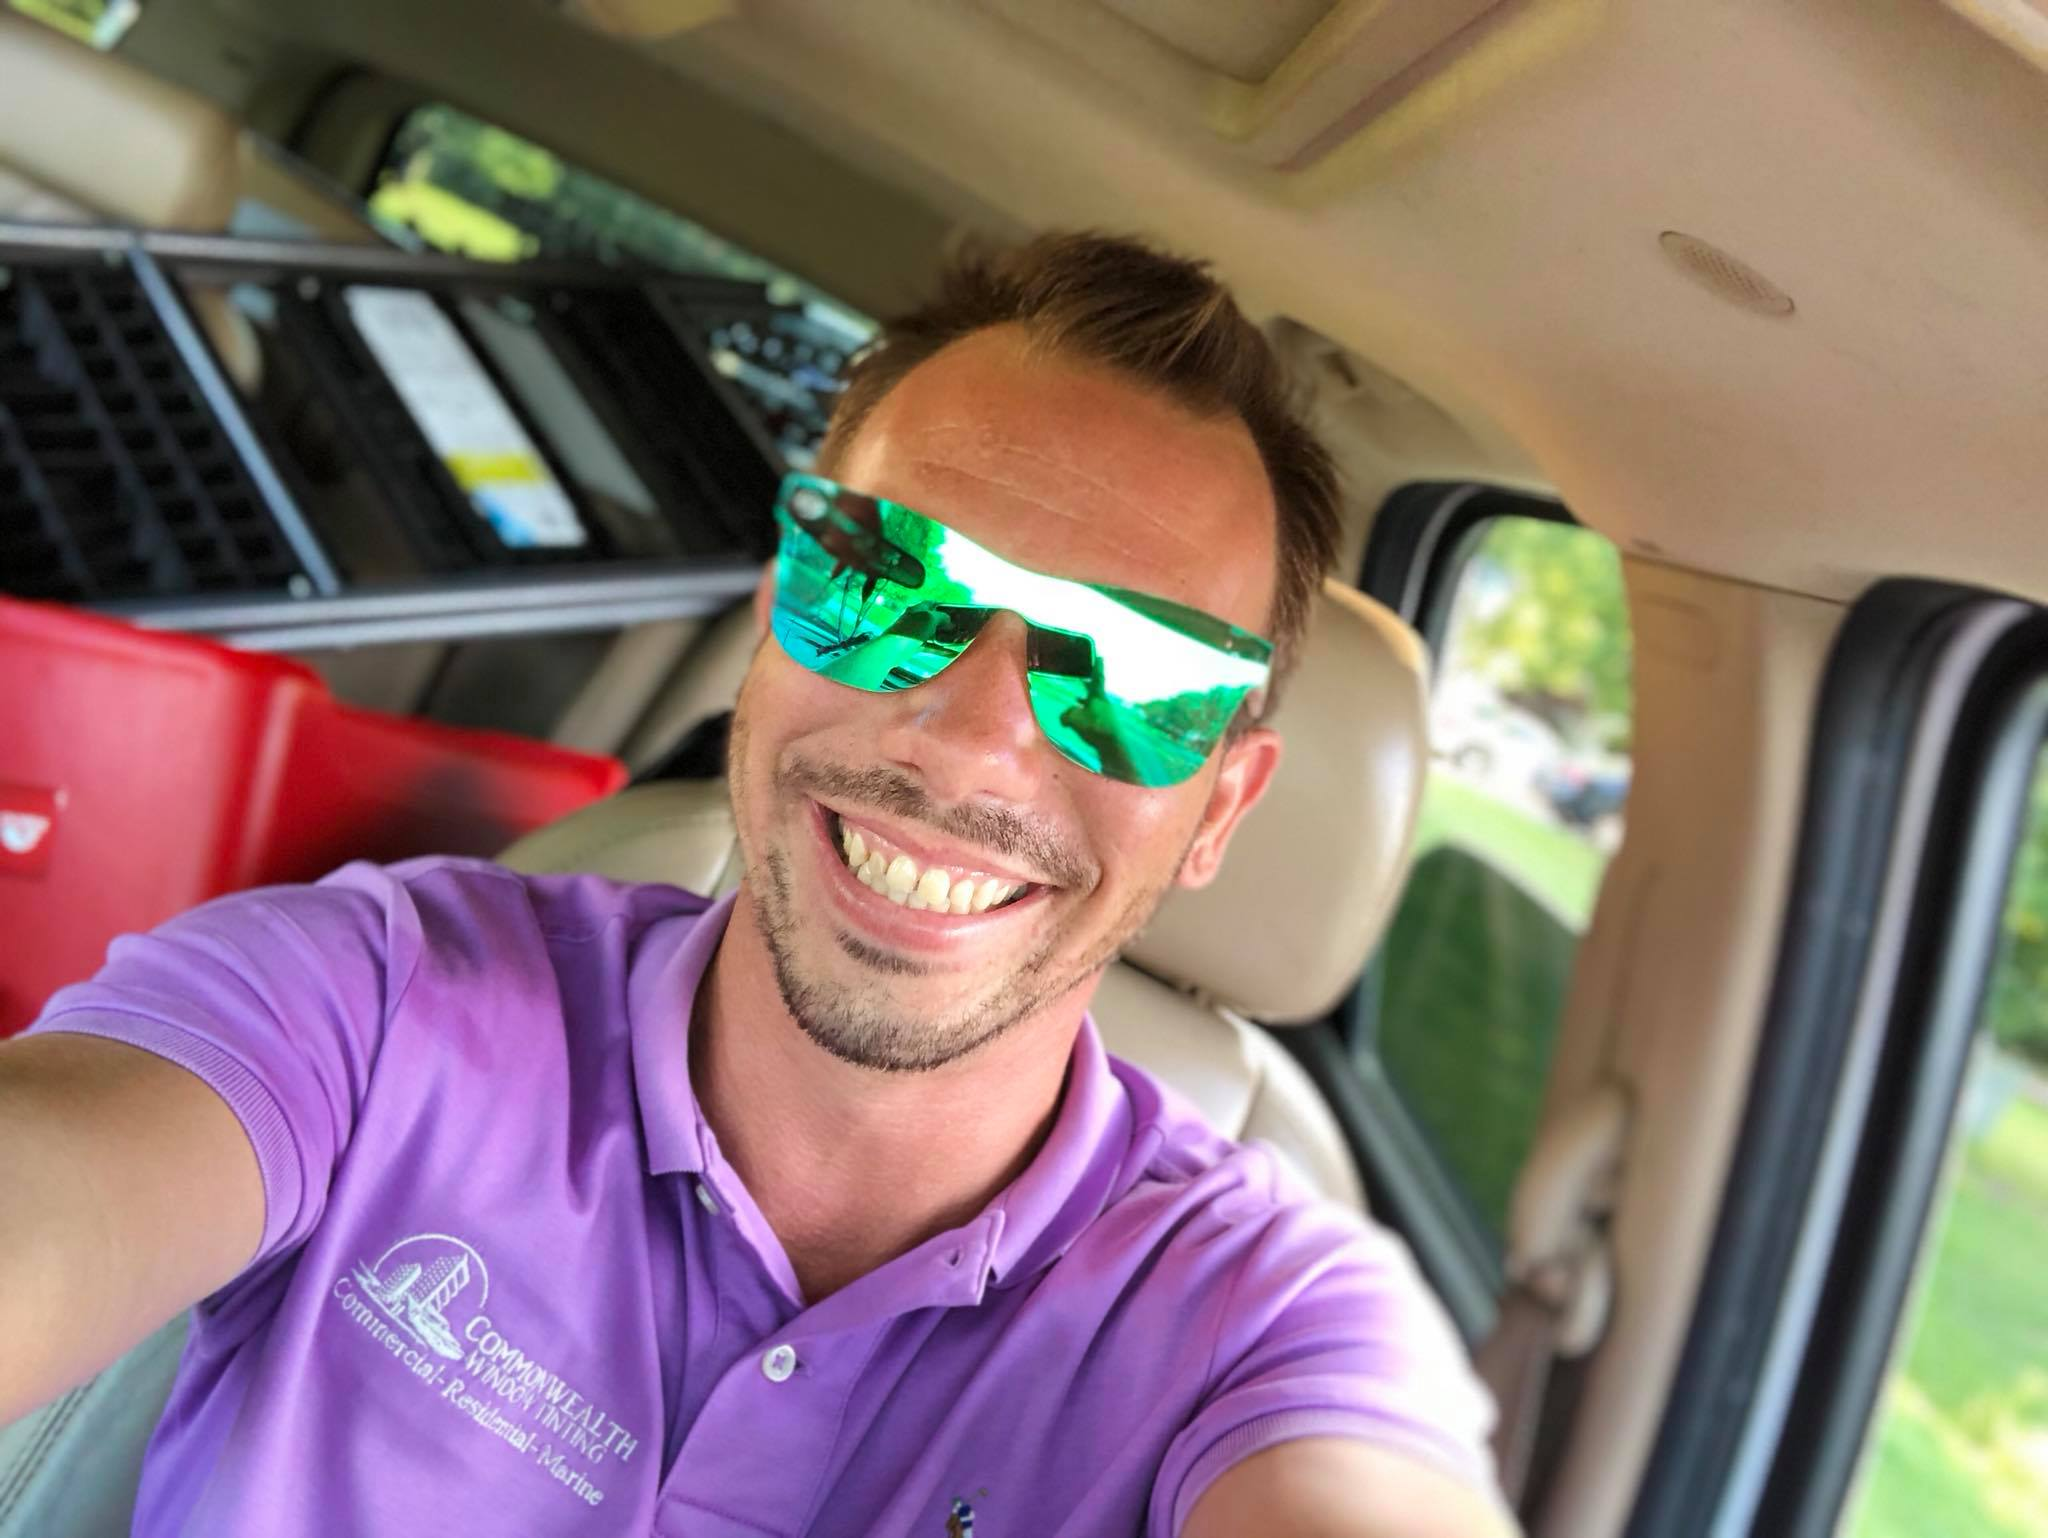 commercial window tinting, stan epps jr sunglasses